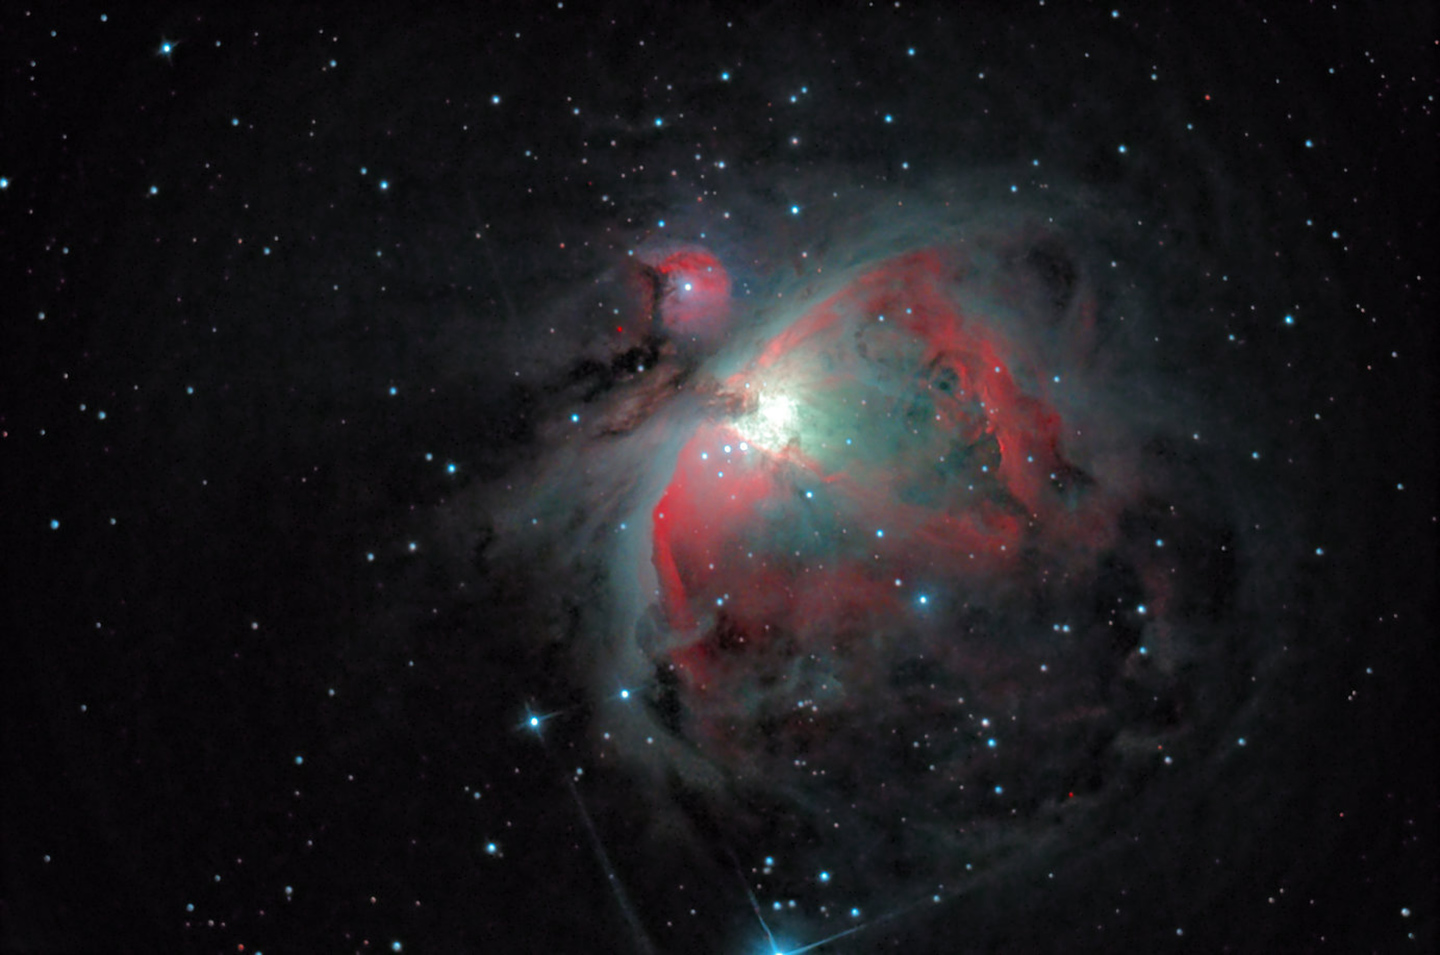 Insight Astronomy Photographer of the Year 2017